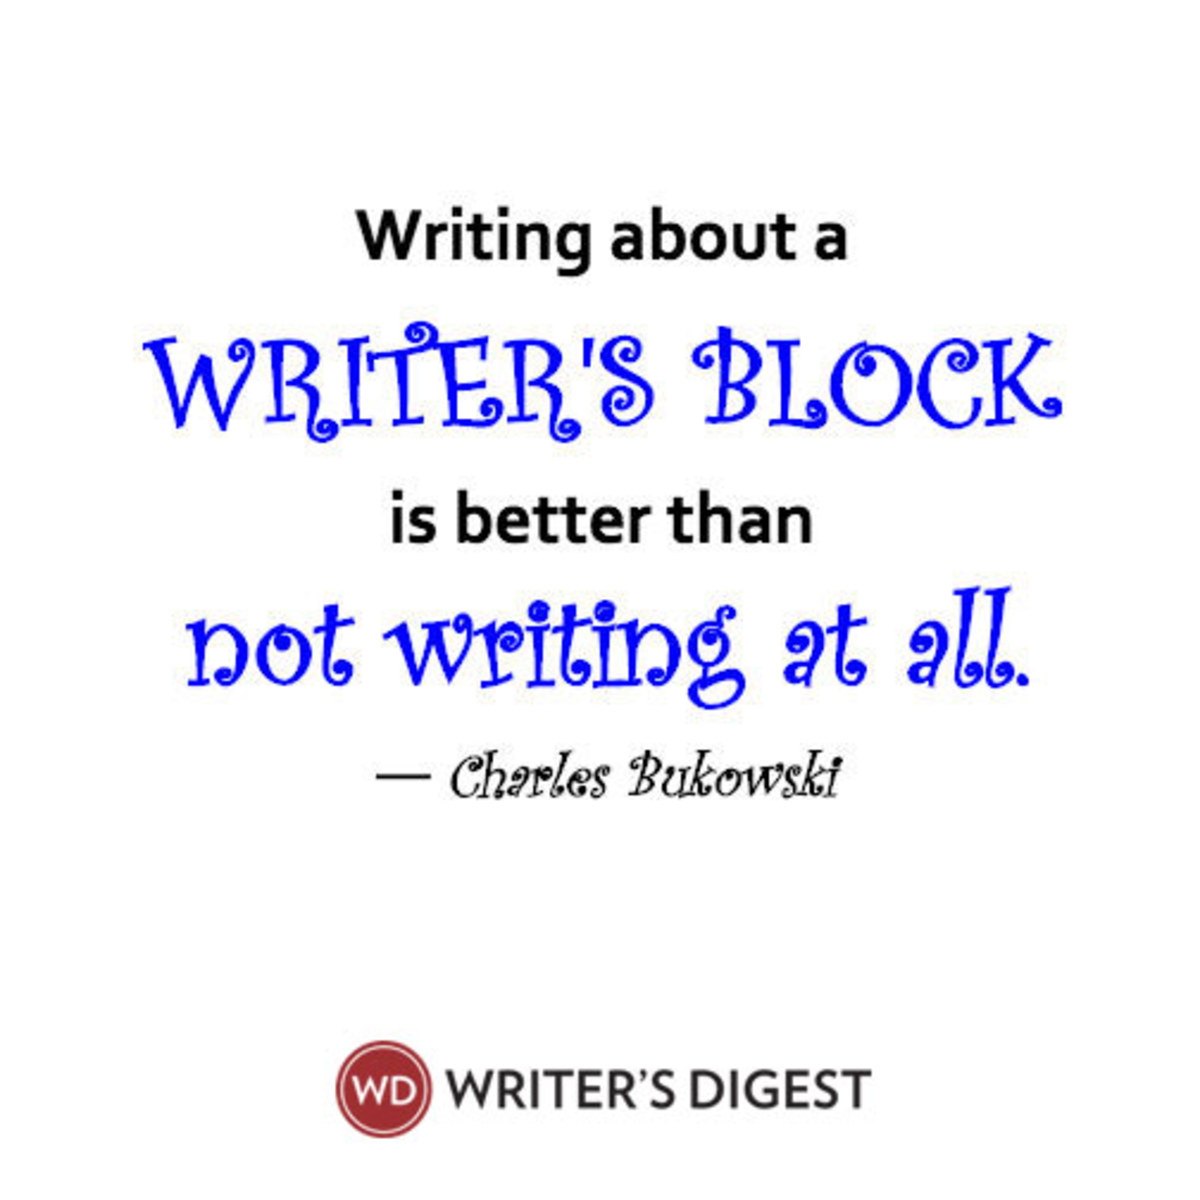 Don't let writer's block get you down, grab a copy of this free eBook to get yourself unstuck and writing again.